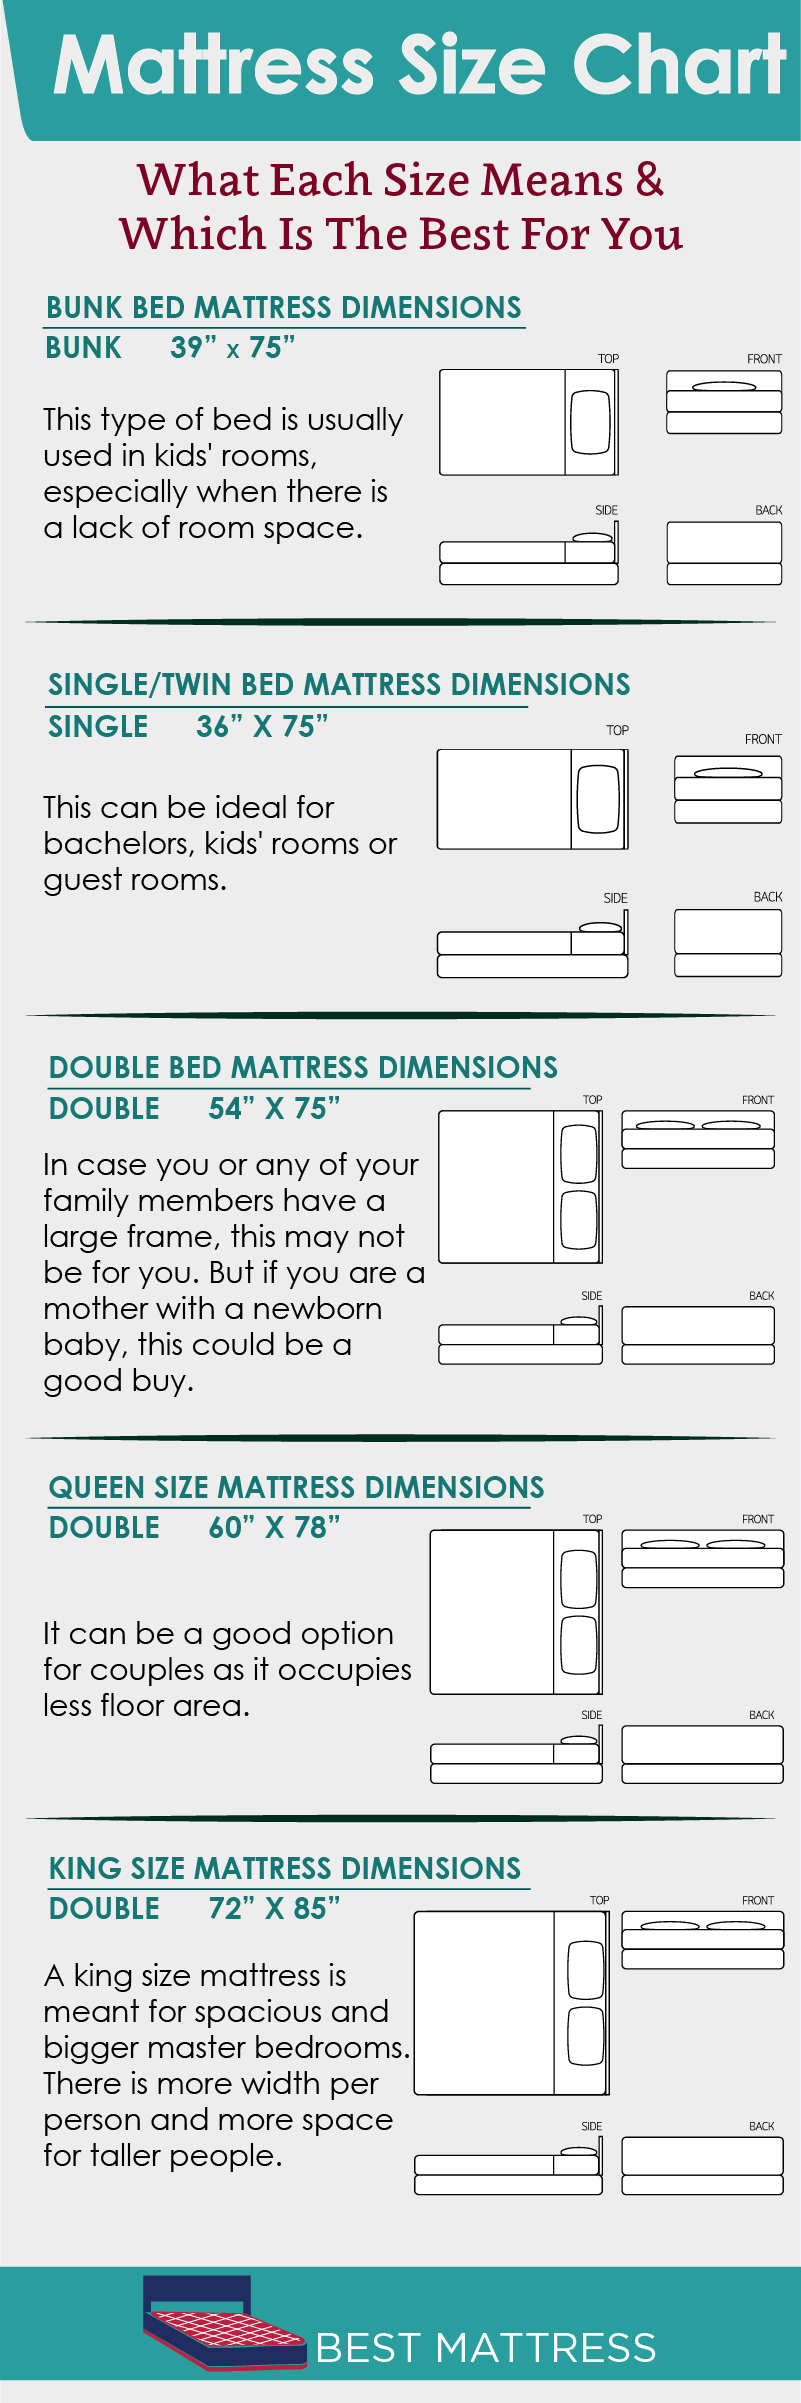 Standard Queen Size Bed Dimension Mattress Size Chart Single Double King Or Queen What Do They